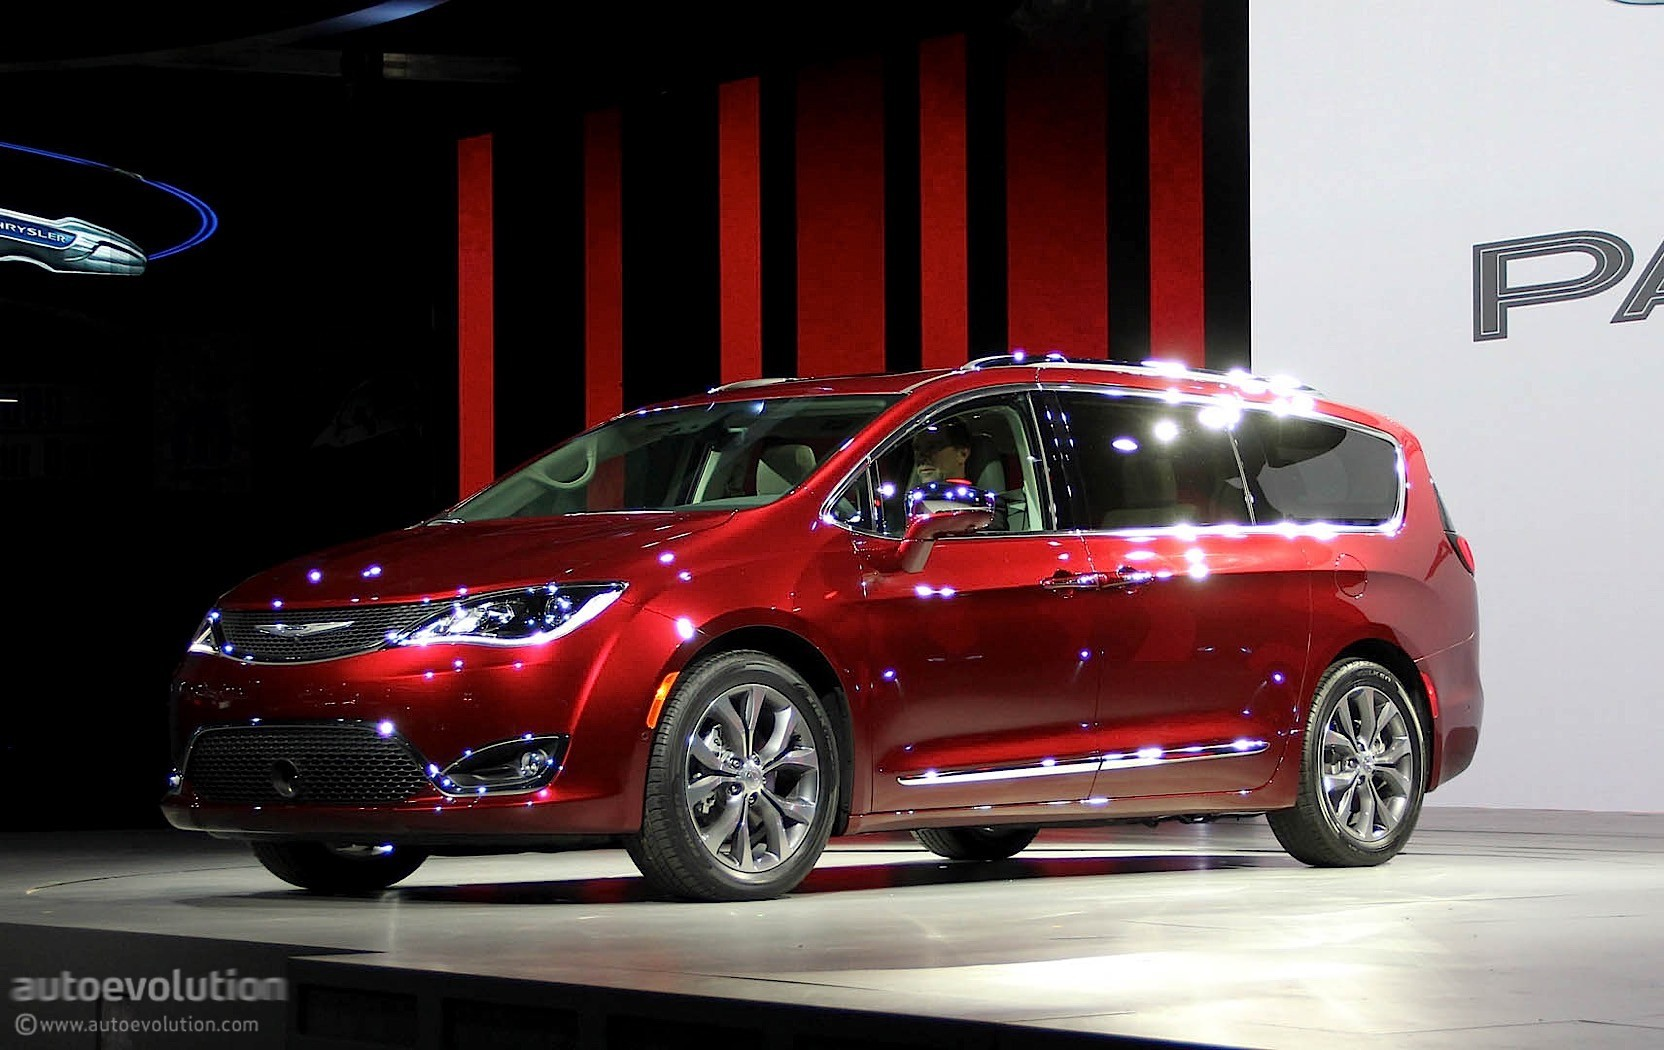 2017 Chrysler Pacifica Is En Route To A Dealership Near